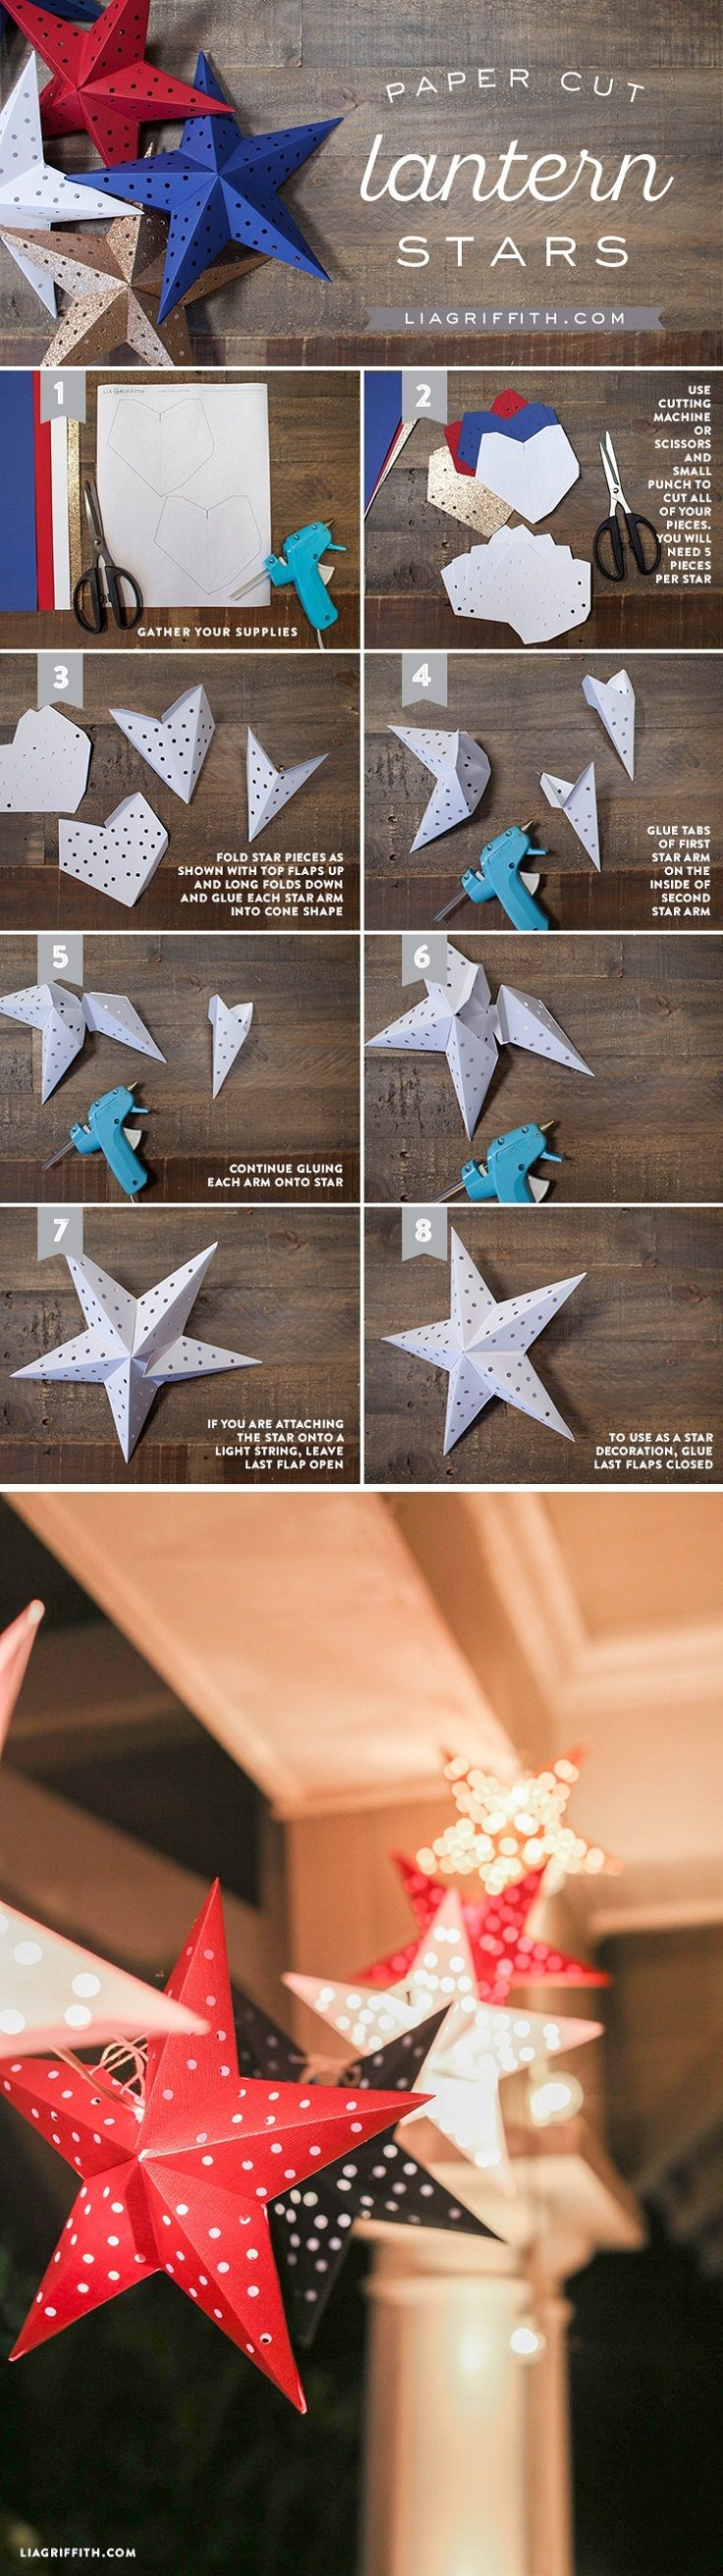 Fourth of July Paper Star Lights Garland - There's no point in decorating your yard for the 4th of July if you're not planning on making the prettiest garland ever. And we're here to help you find it, and we present to you the paper star lights garland. It works as a garland and you can put lights in it too, it's perfect! Just follow the instruction and you'll make it in no time.